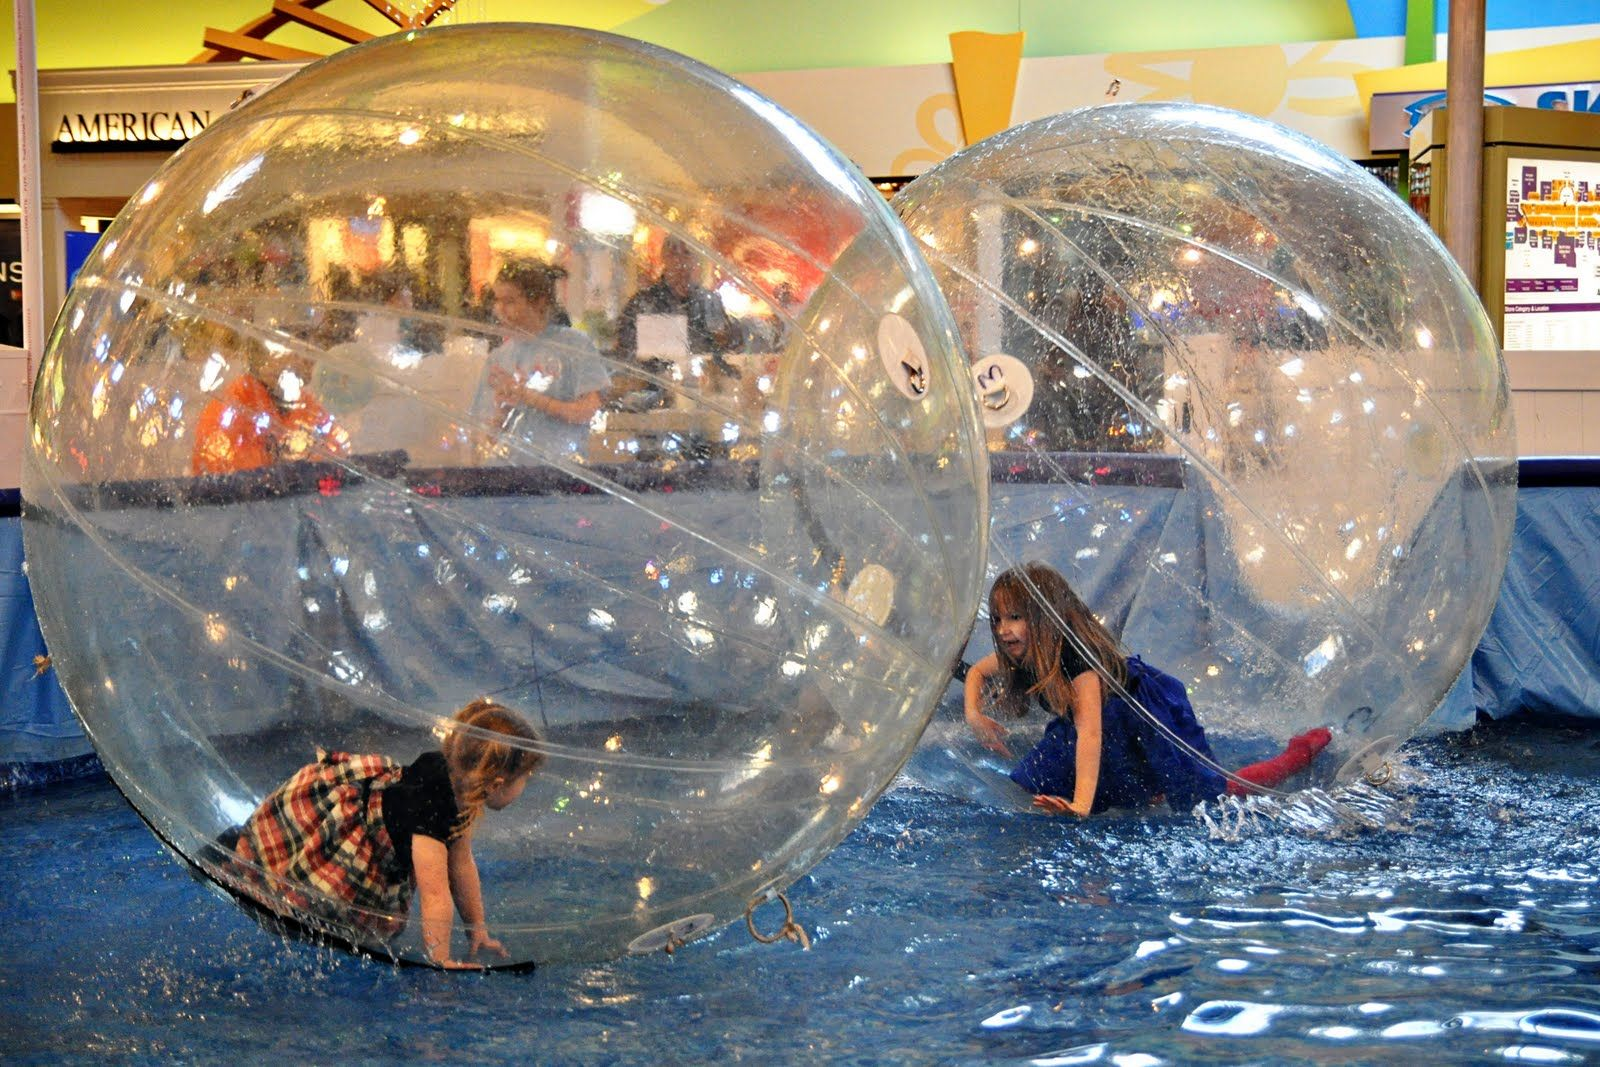 human hamster ball + water. YES. How wrong is it that I